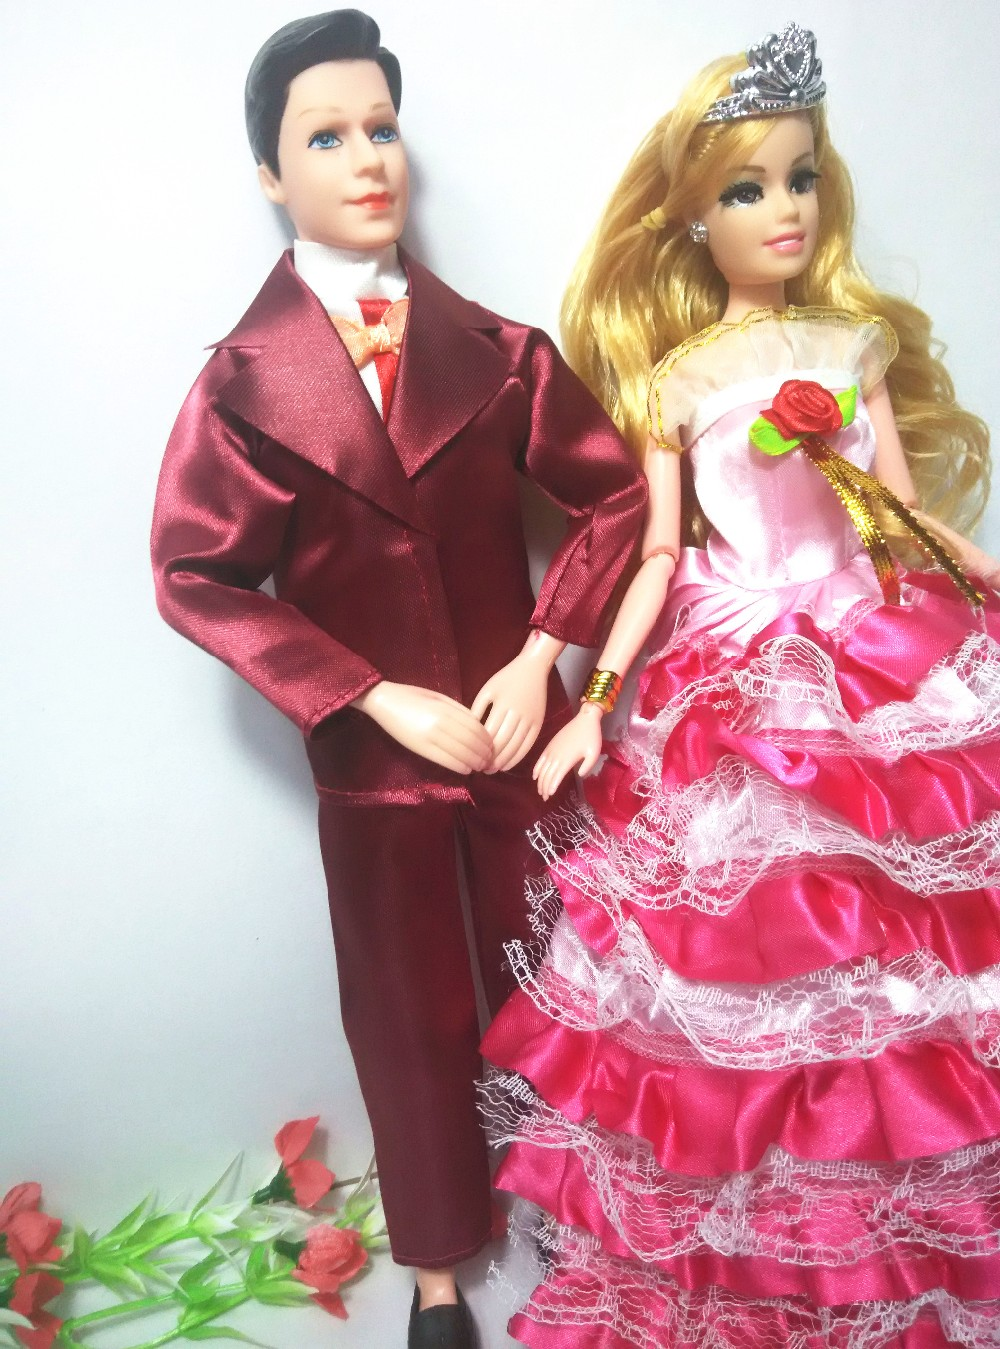 New vogue Women and men  toy dolls for barbie doll toys humorous doll equipment set diy costume up for ladies christmas reward